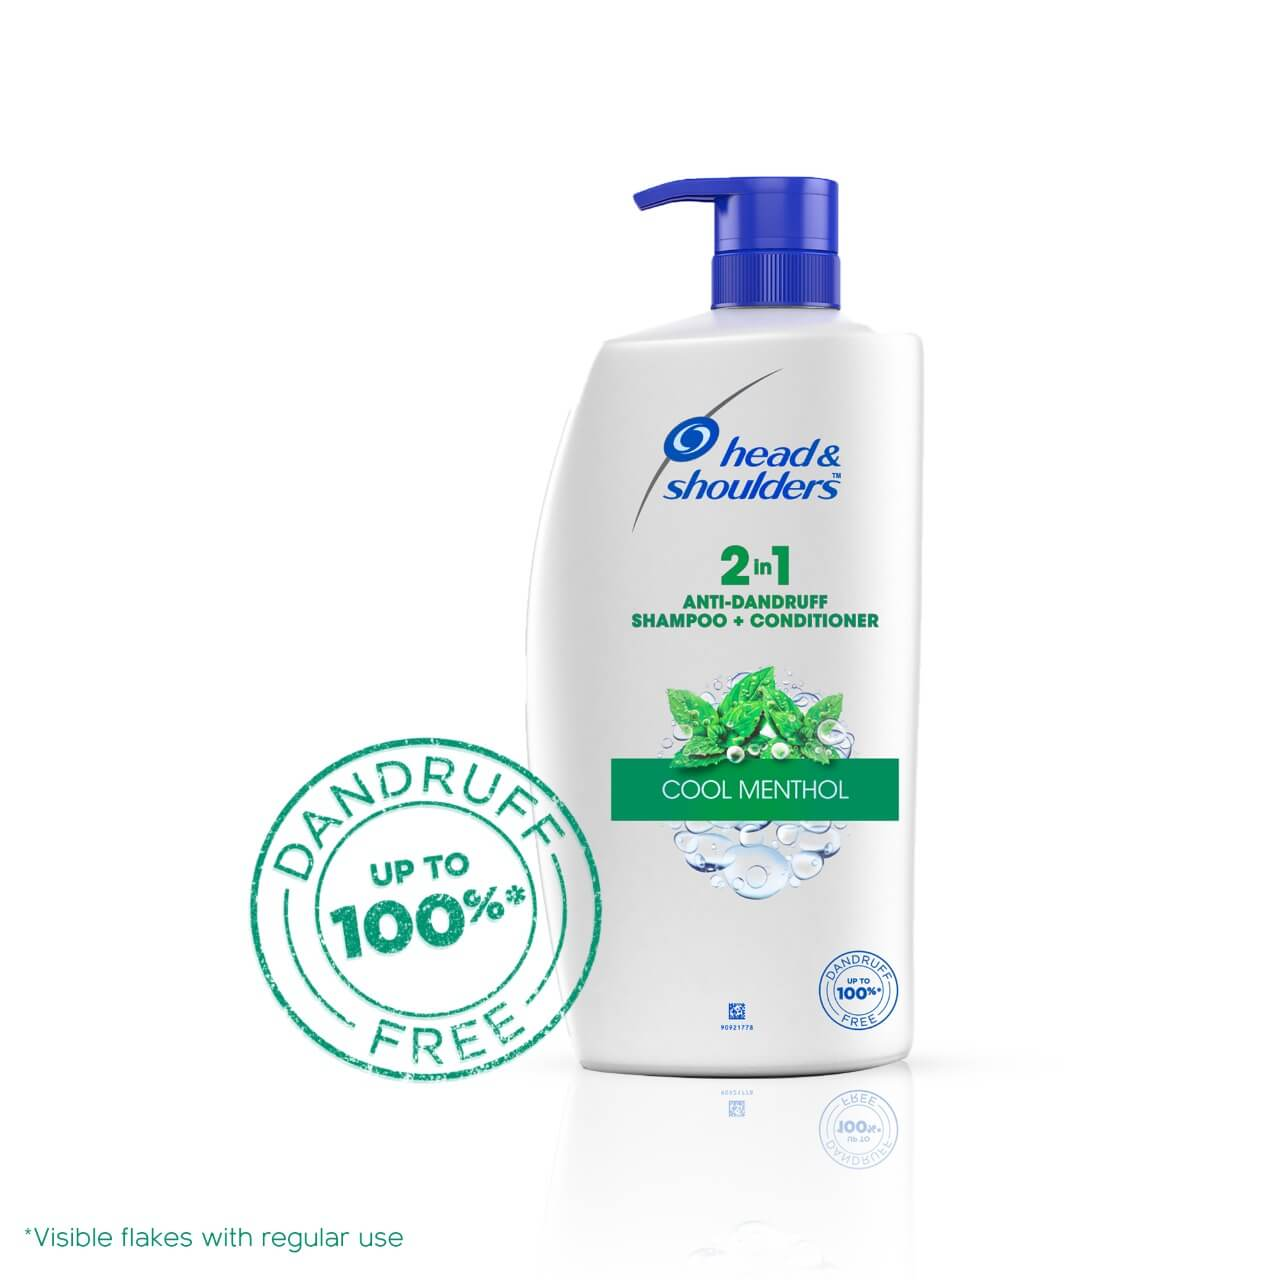 Head and Shoulders 2-in-1 Cool Menthol Anti-Dandruff Shampoo + Conditioner